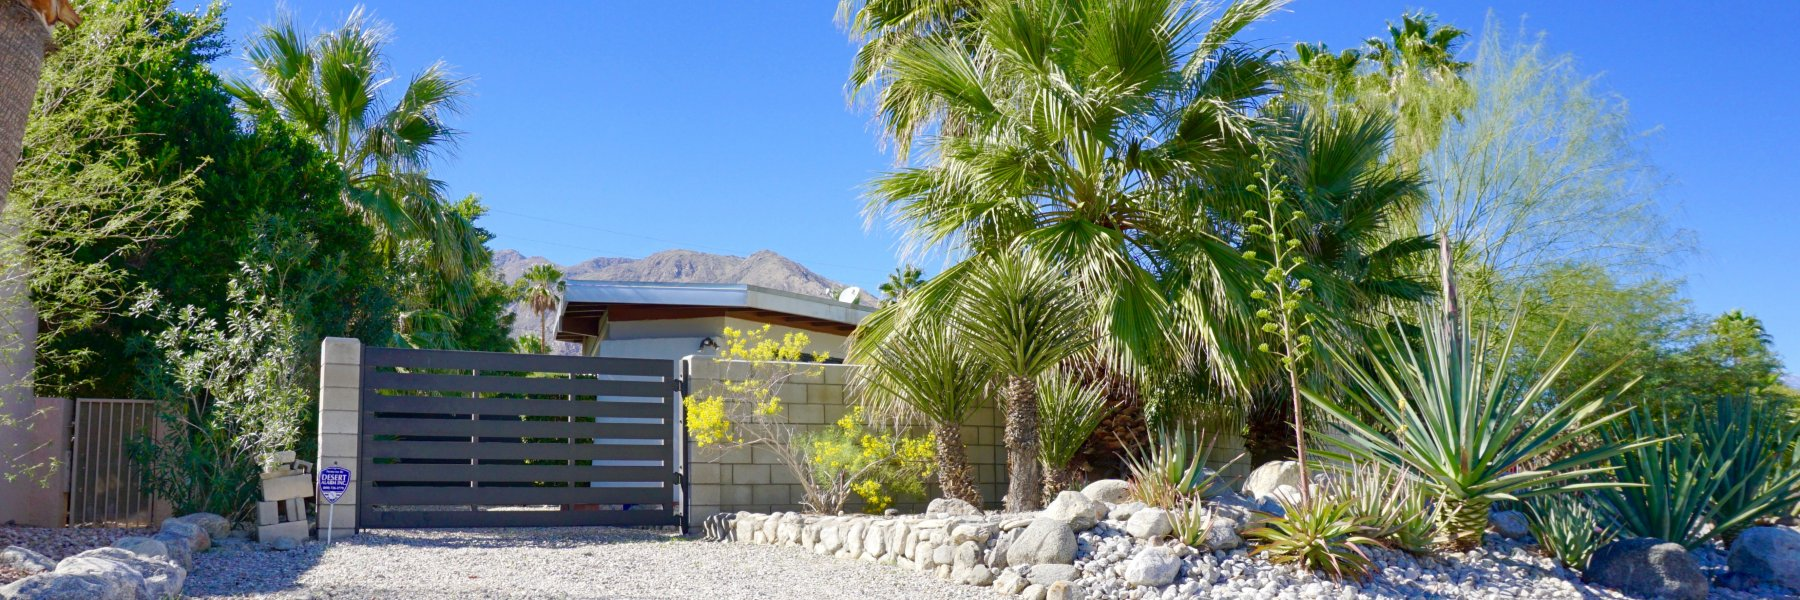 Chino Canyon is a community of homes in Palm Springs California